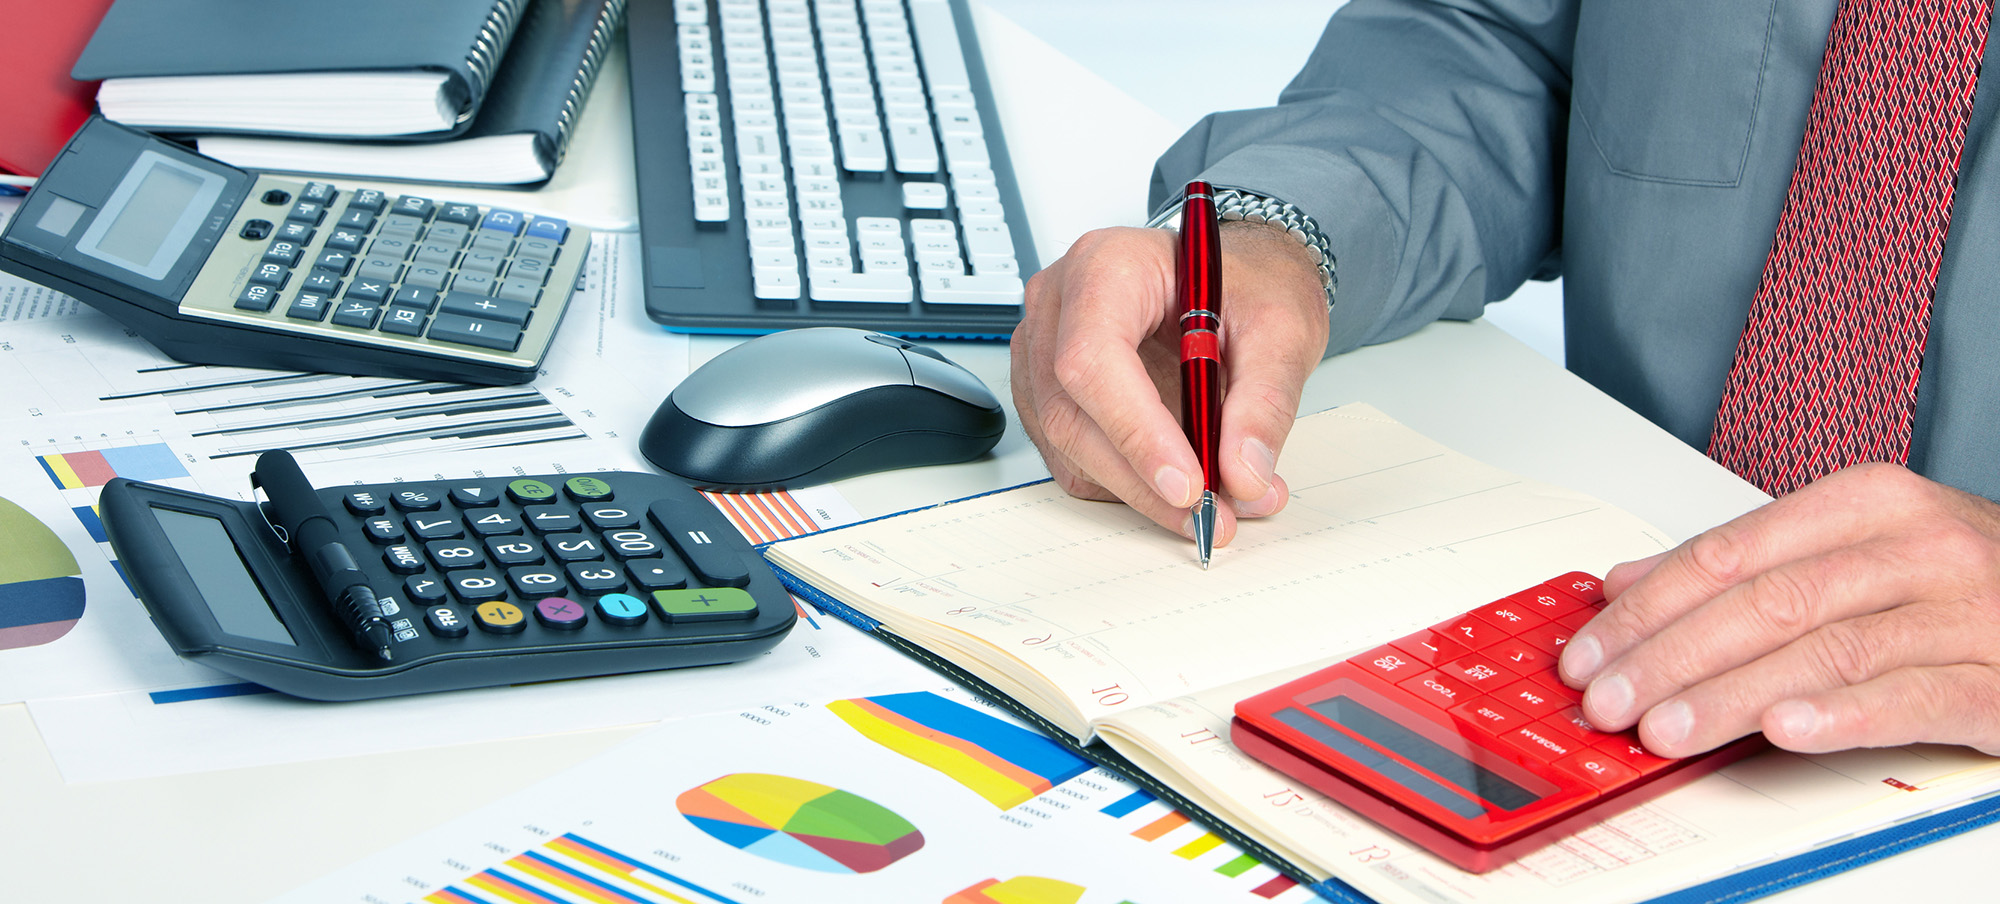 Why Use Online Invoicing?